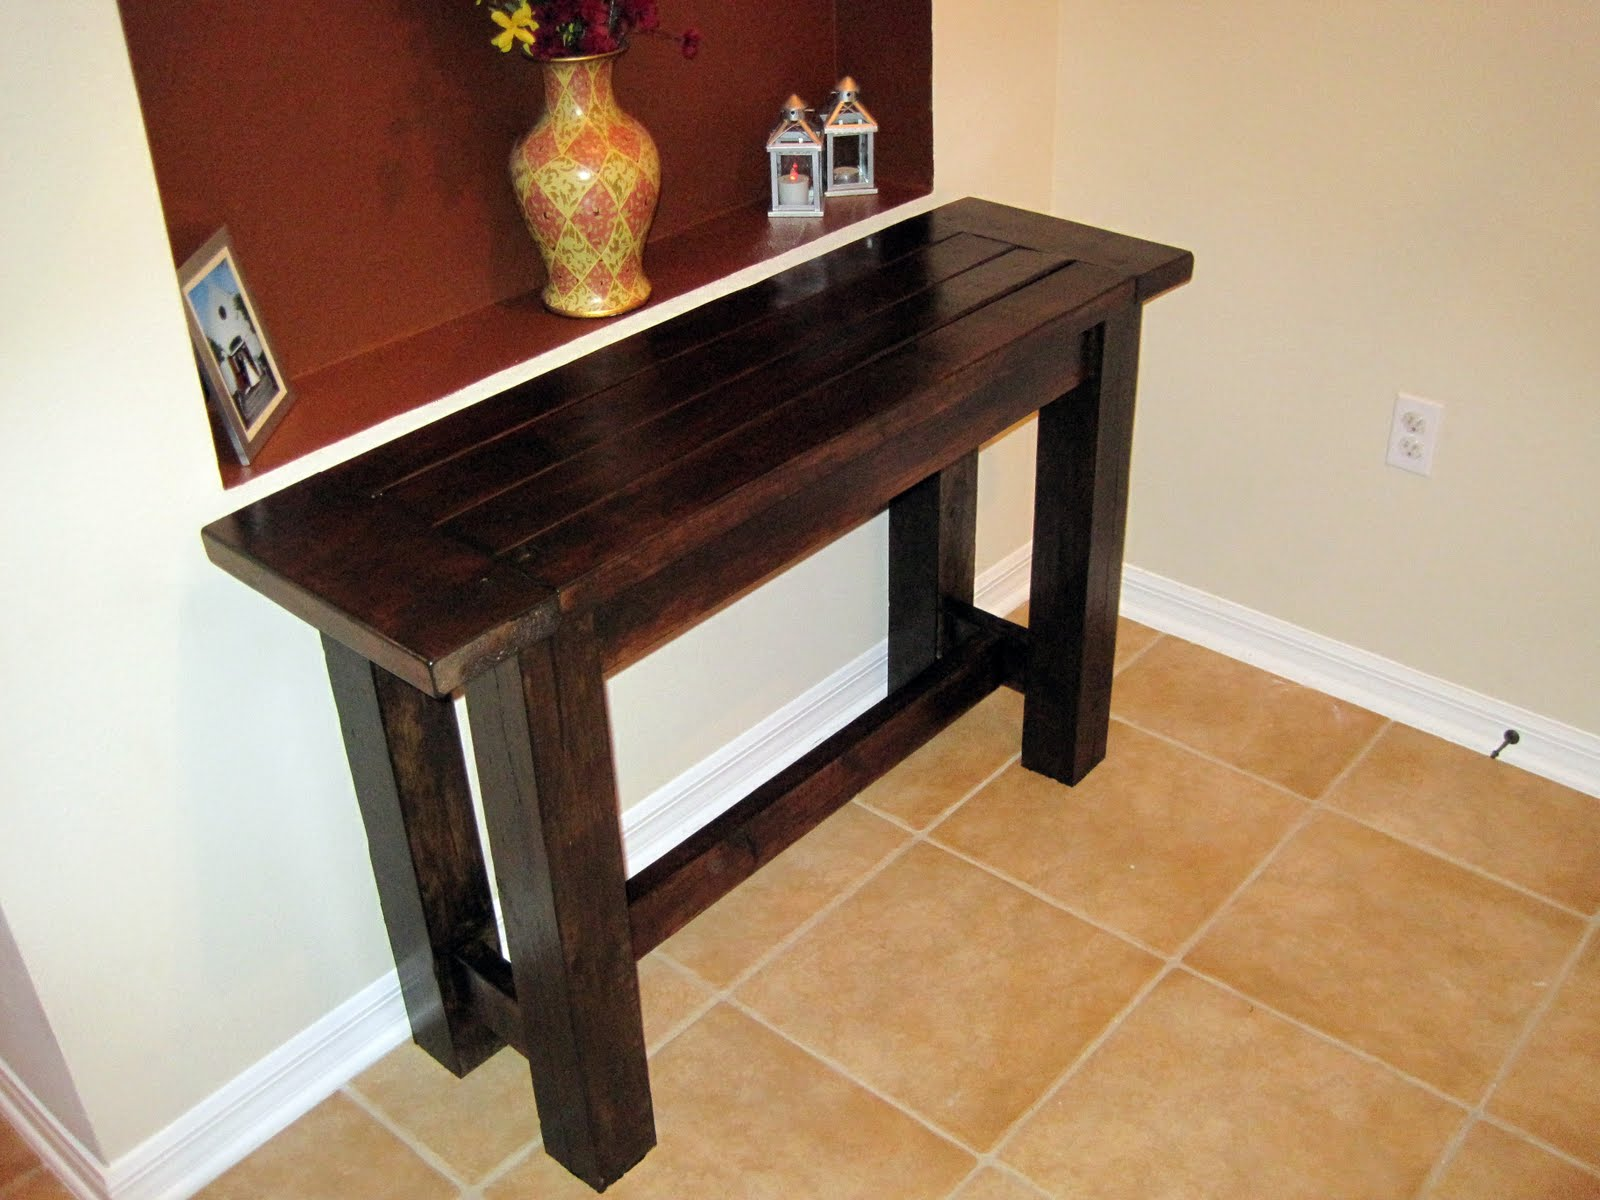 Anyone wanna see our $500 Pottery Barn console table